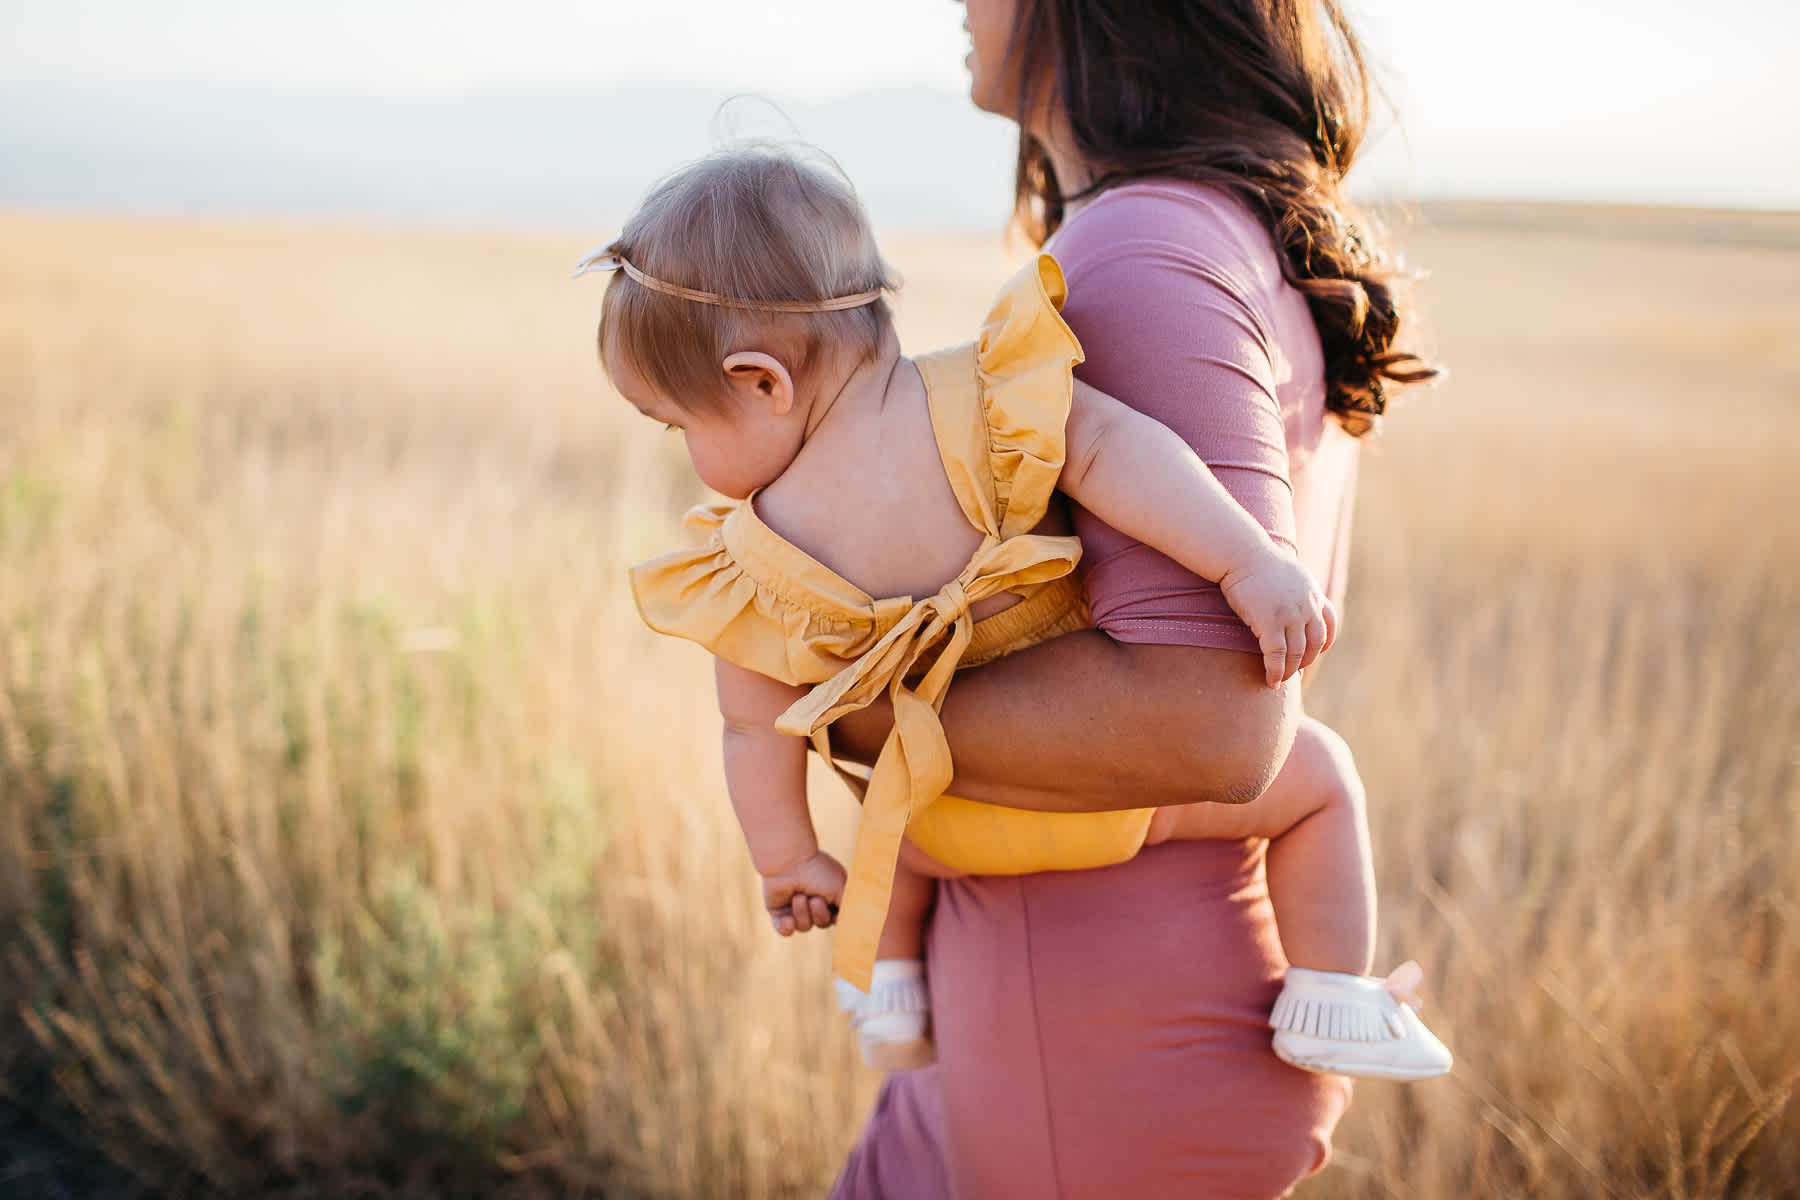 salt-lake-city-family-lifestyle-phtpographer-golden-field-23